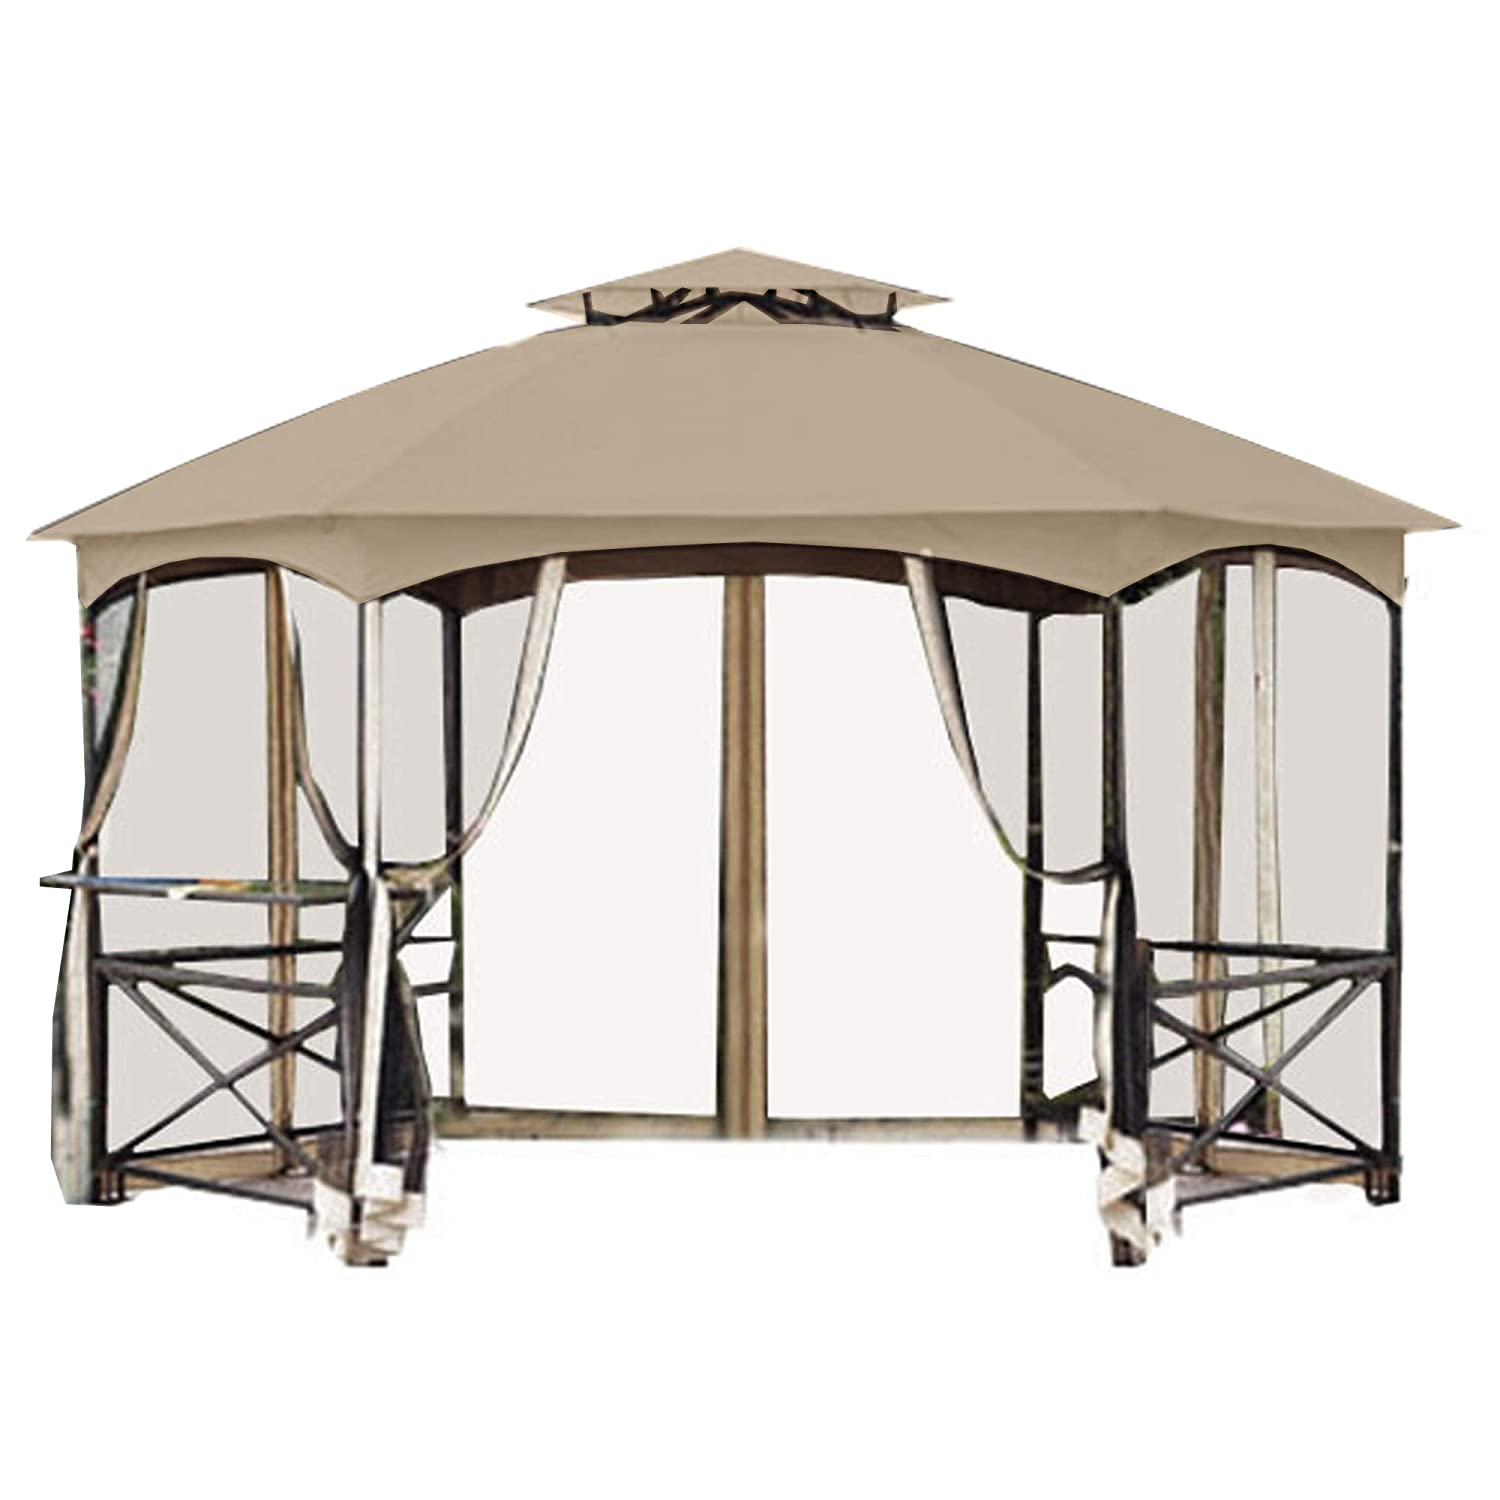 Garden Winds Crossman Hexagon Gazebo Replacement Canopy